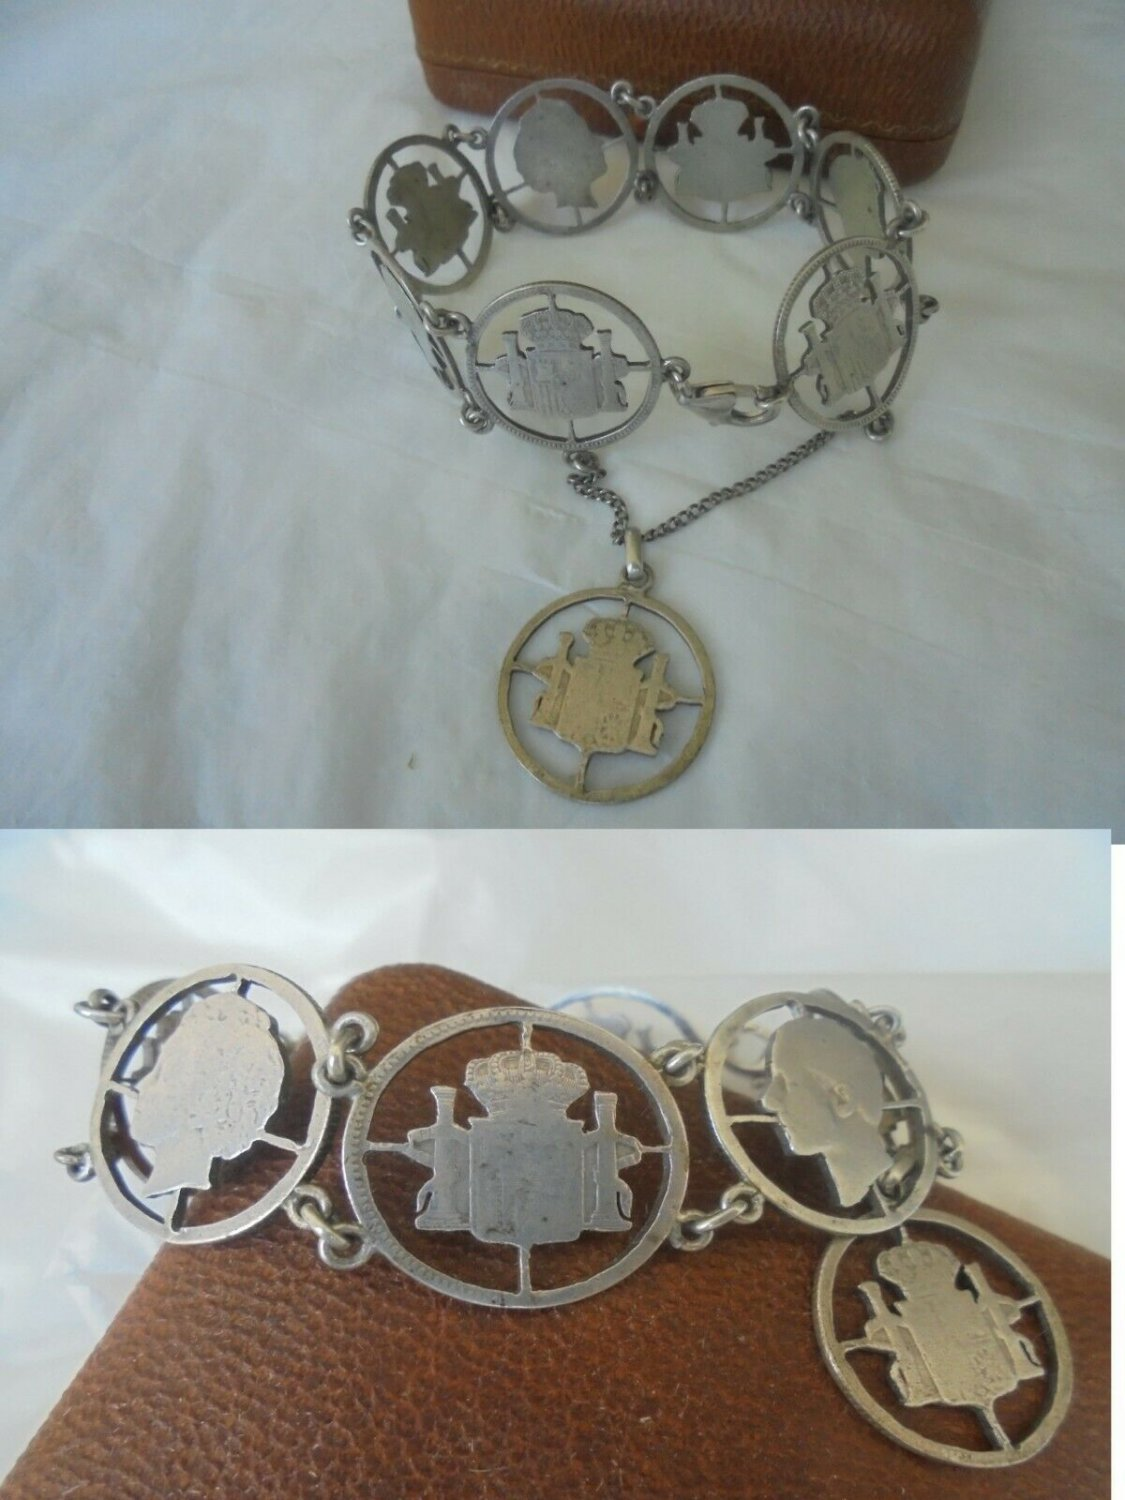 Original charm BRACELET sterling SILVER 925 with symbols of Royals of Spain 1950s Franco era